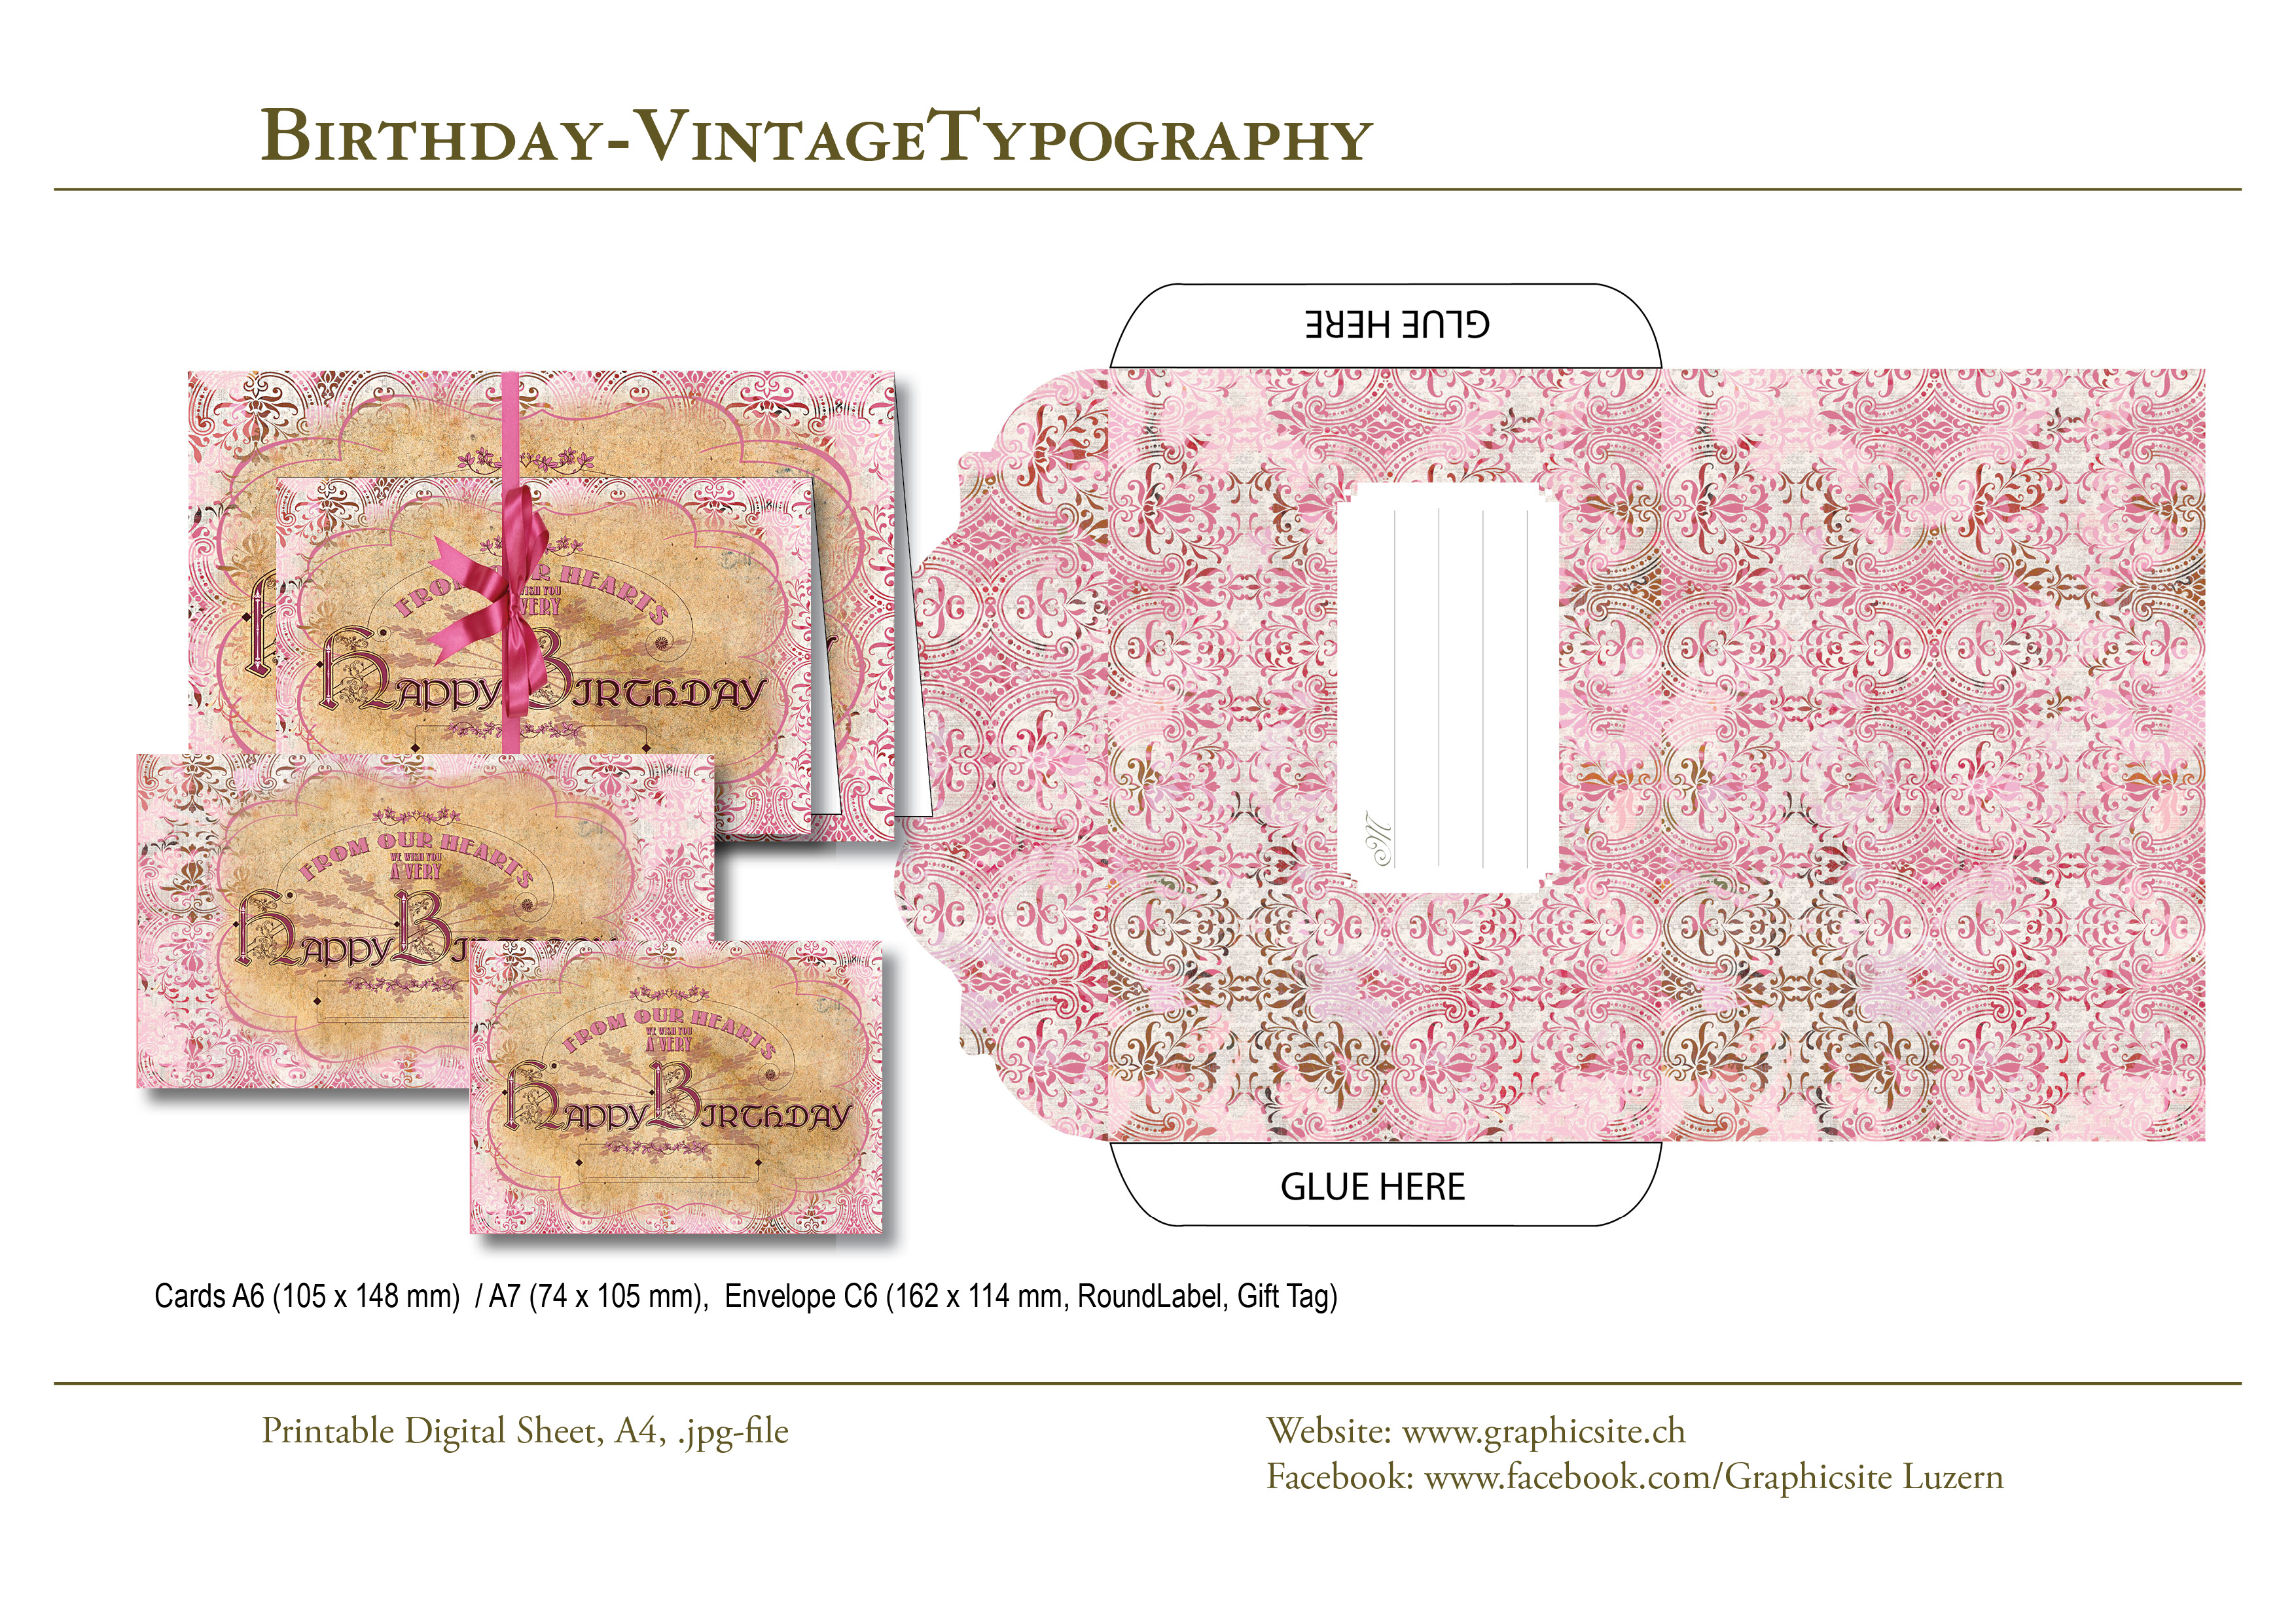 Printable Digital Sheets - Birthday Collections - BirthdayVintageTypography - #birthday, #cards, #envelope, #labels, #tags, #typography